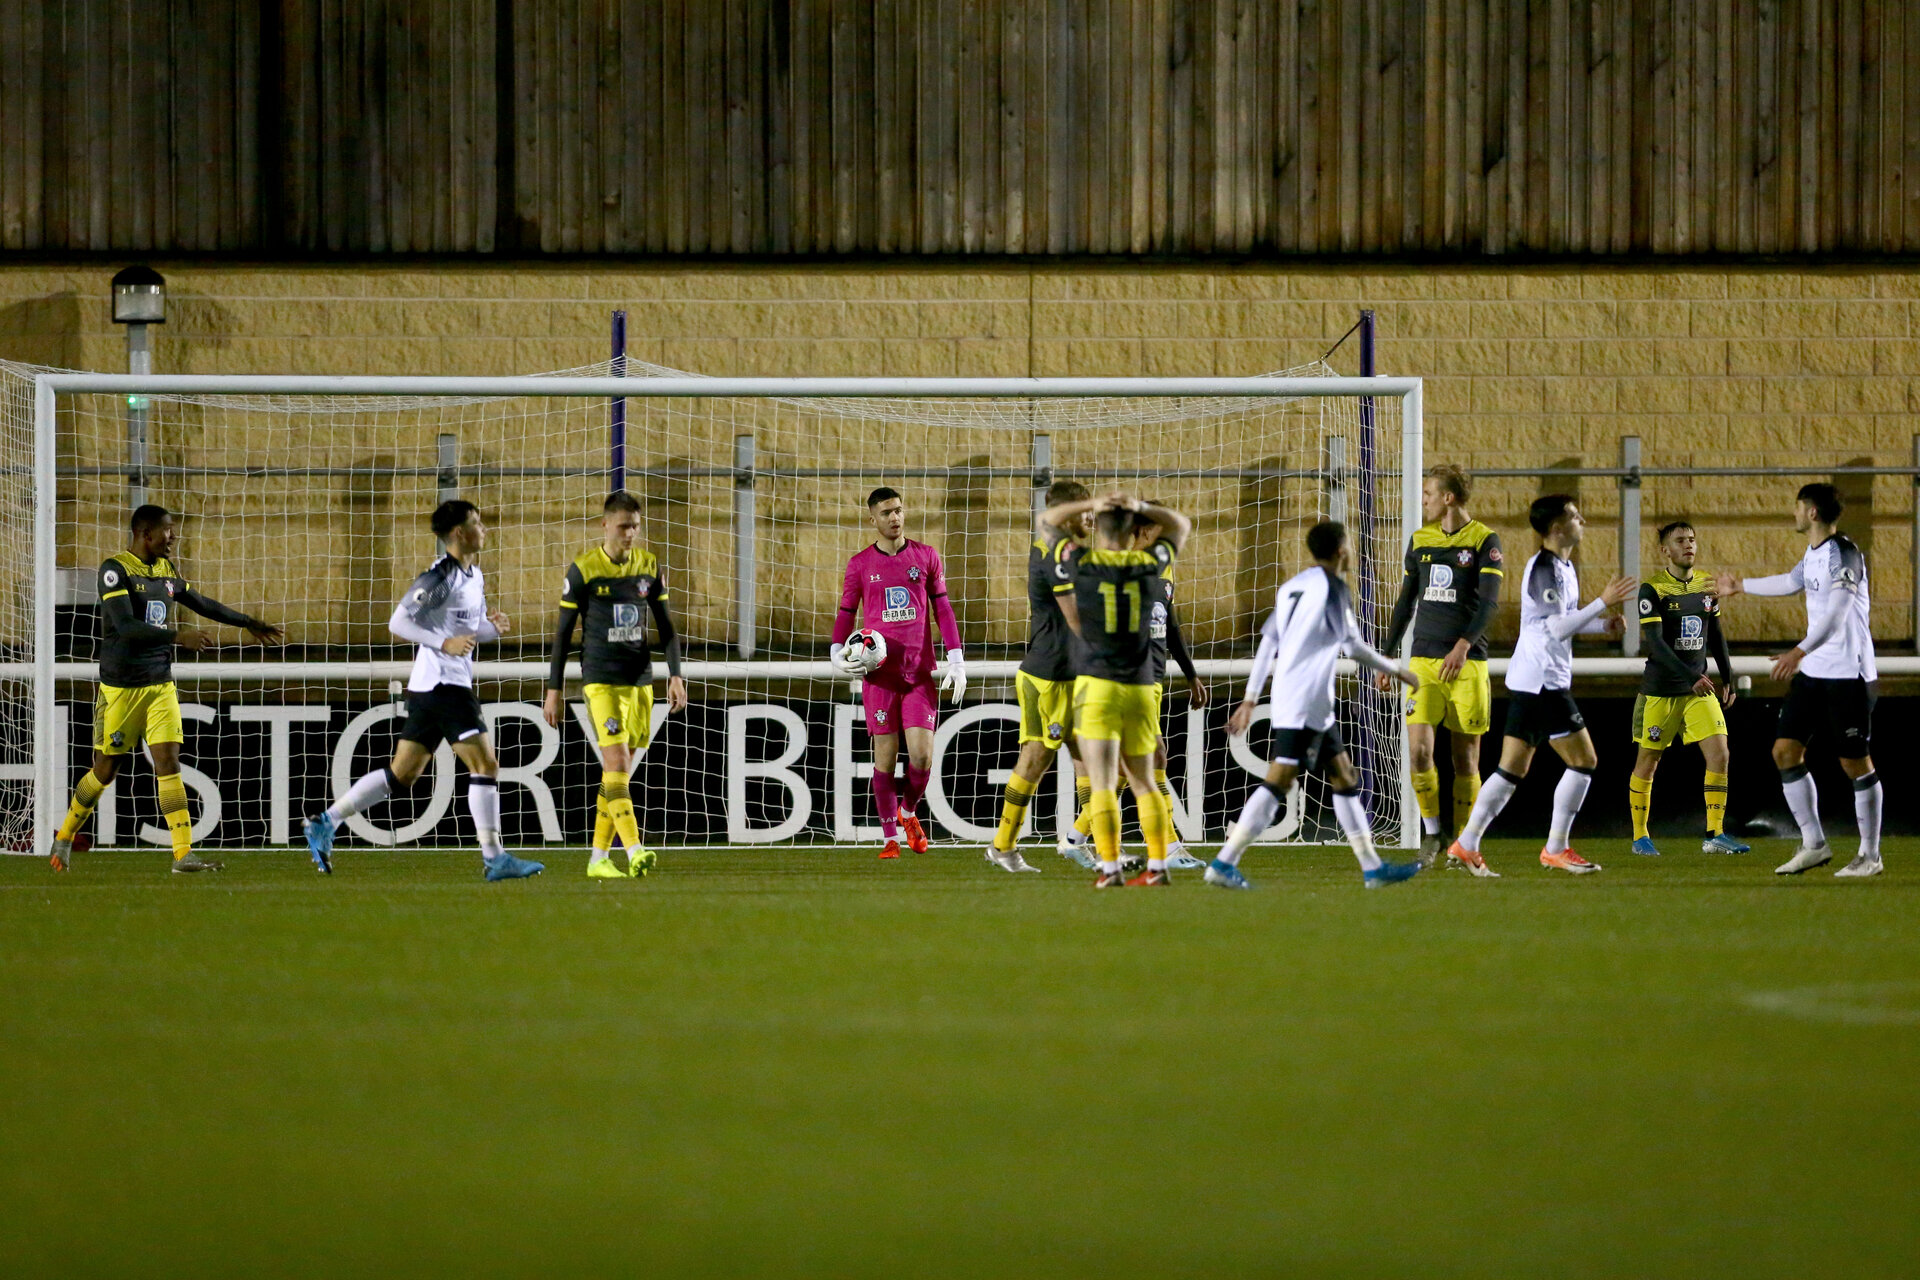 LOUGHBOUROUGH, ENGLAND - DECEMBER 10: Derby goa during Premier League International Cup match between Derby County and Southampton at Loughborough University Stadium on December 10 2019 in Loughborough, England (Photo by Isabelle Field/Southampton FC via Getty Images)